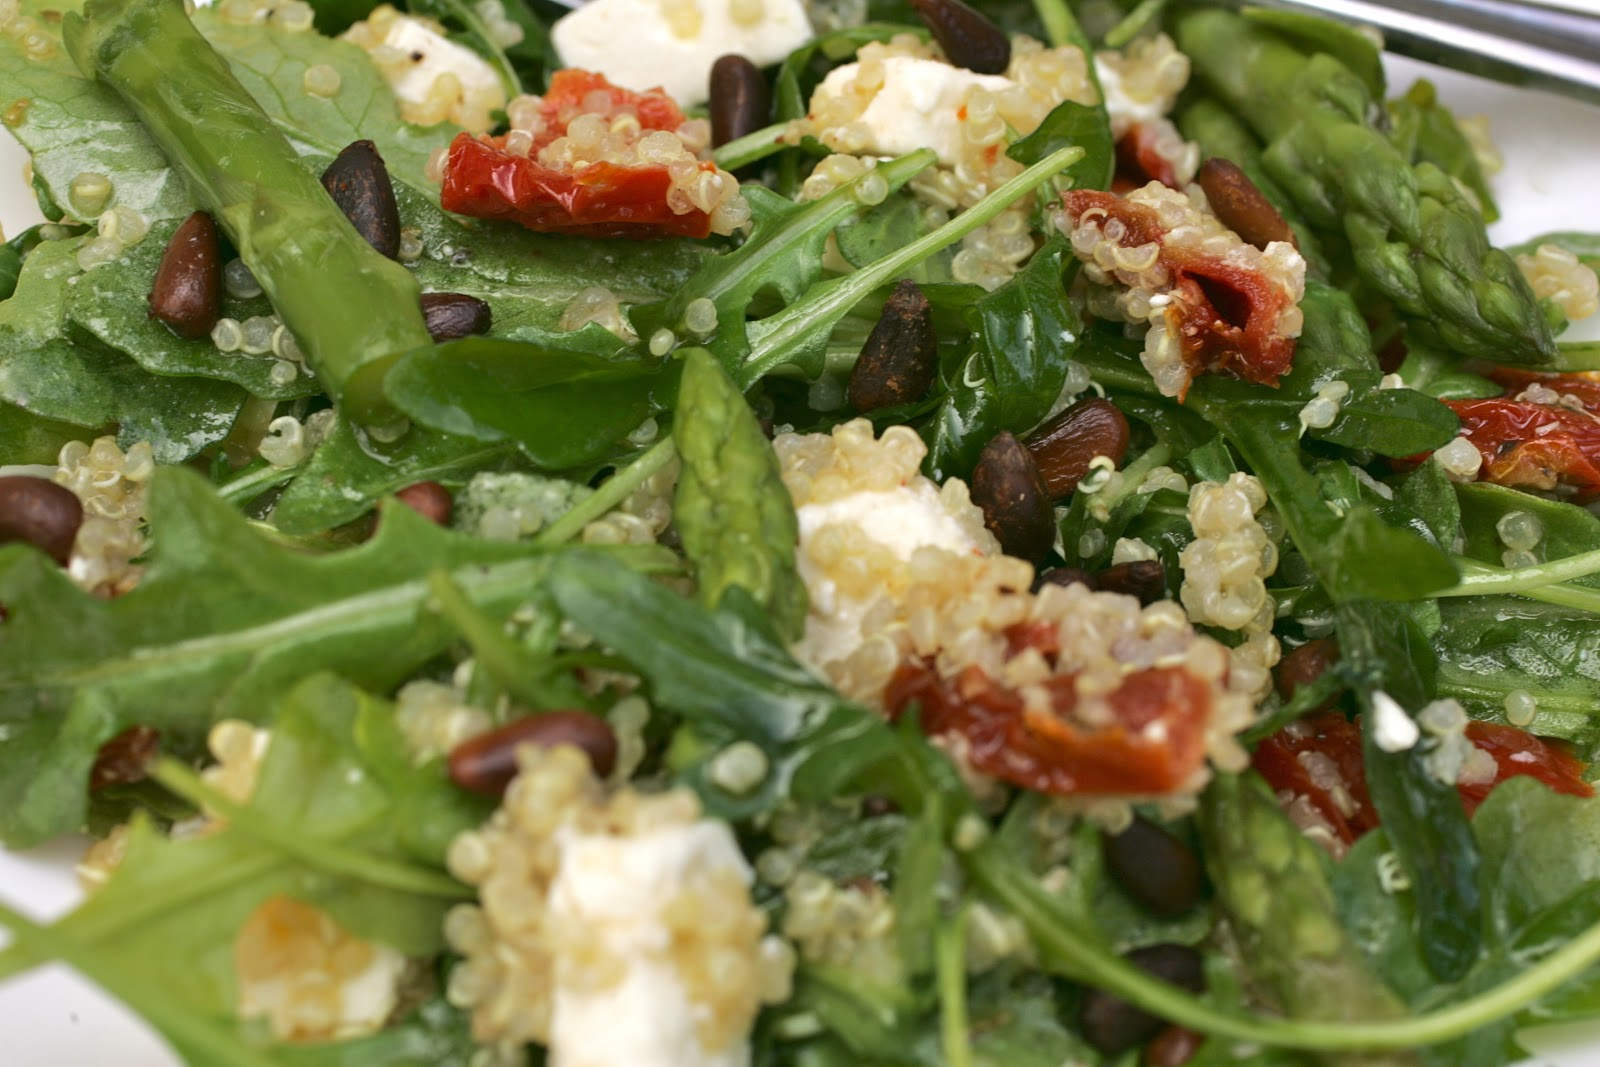 Bake It and Make It with Beth: CPK-Style Quinoa Salad with Arugula